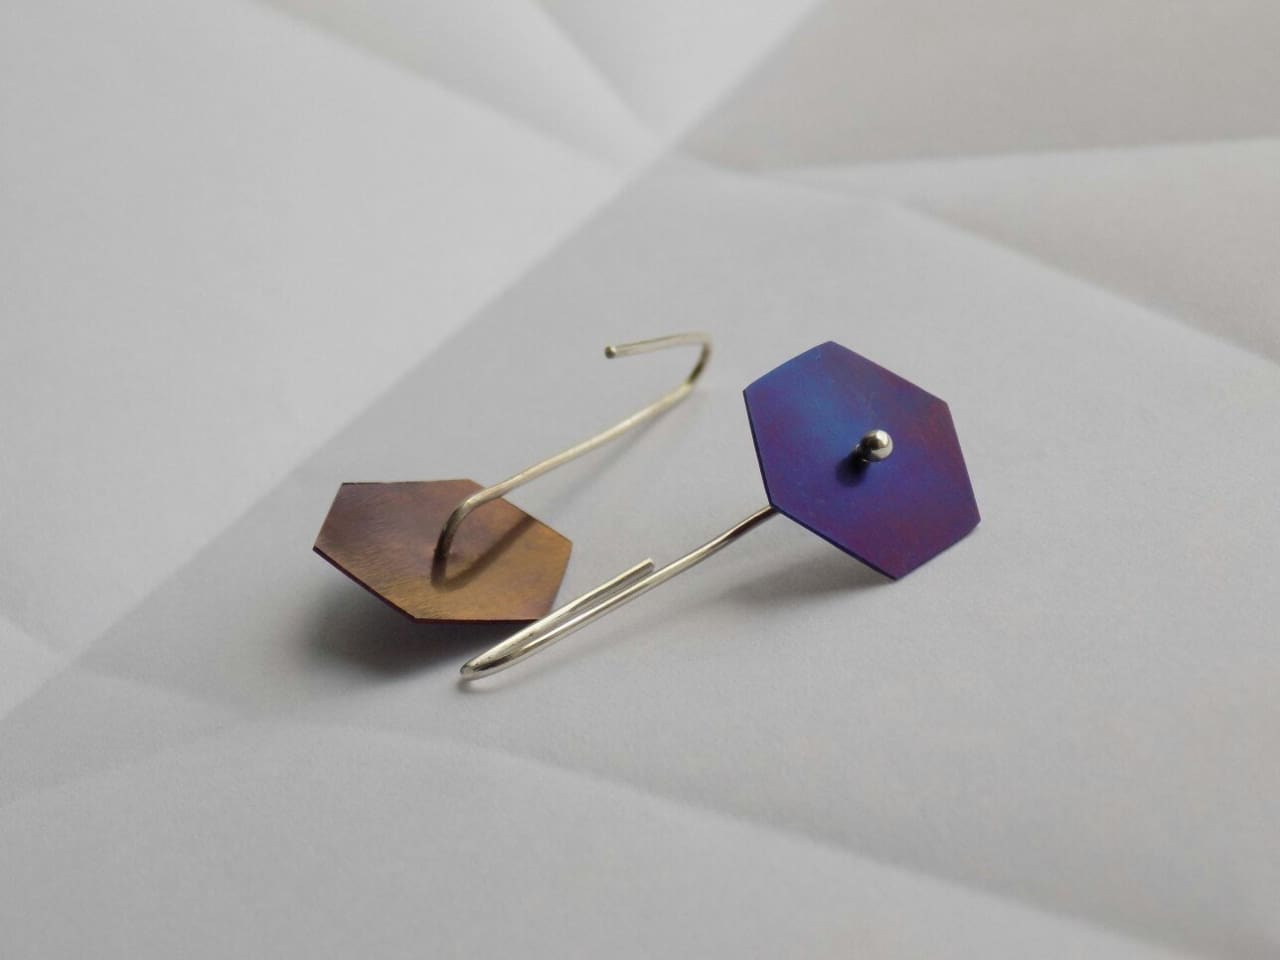 Geometric Dangle Earrings Violet Geometry - Vasylchenko1